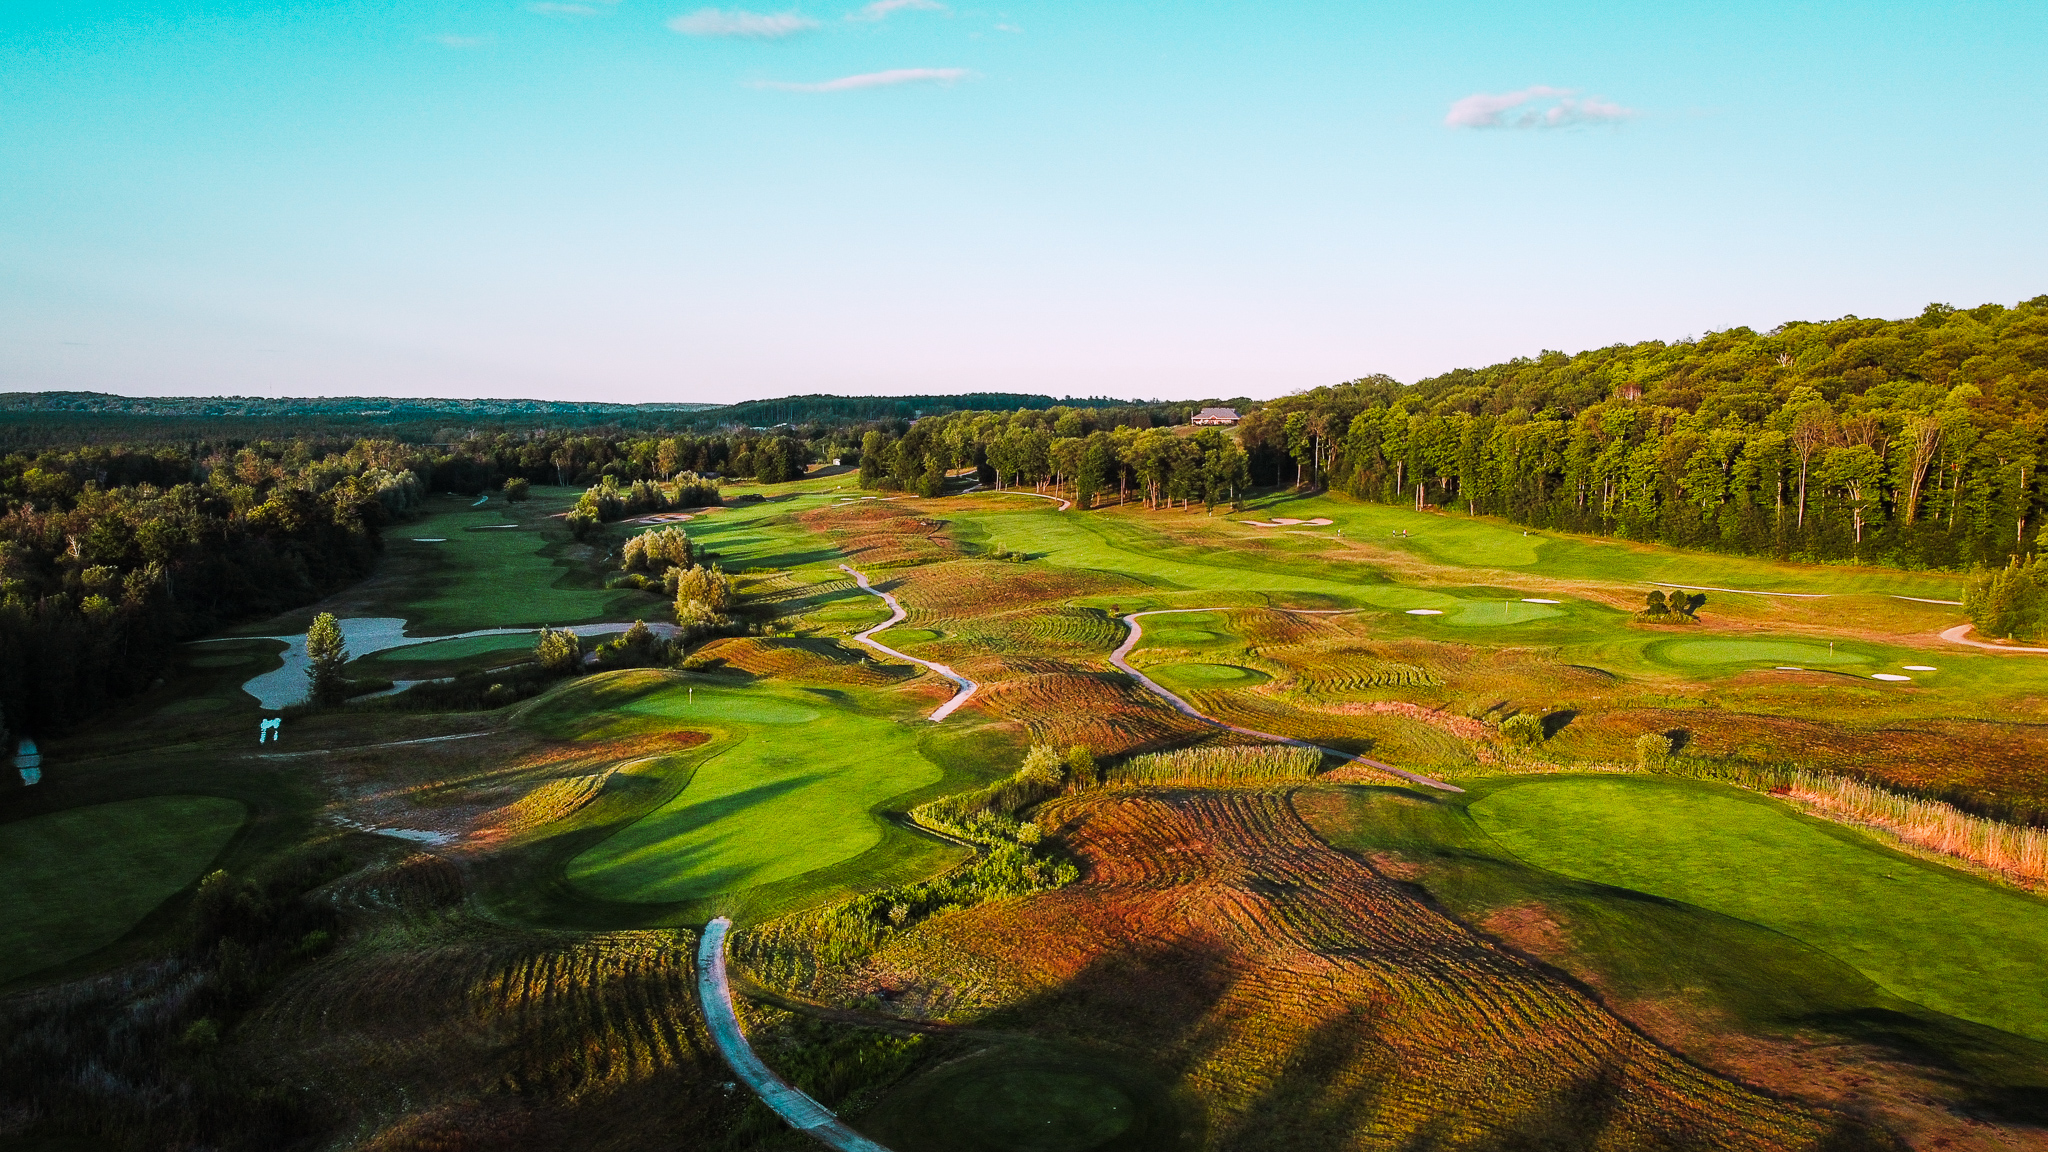 Best Golf Course in Barrie - Vespra Hill